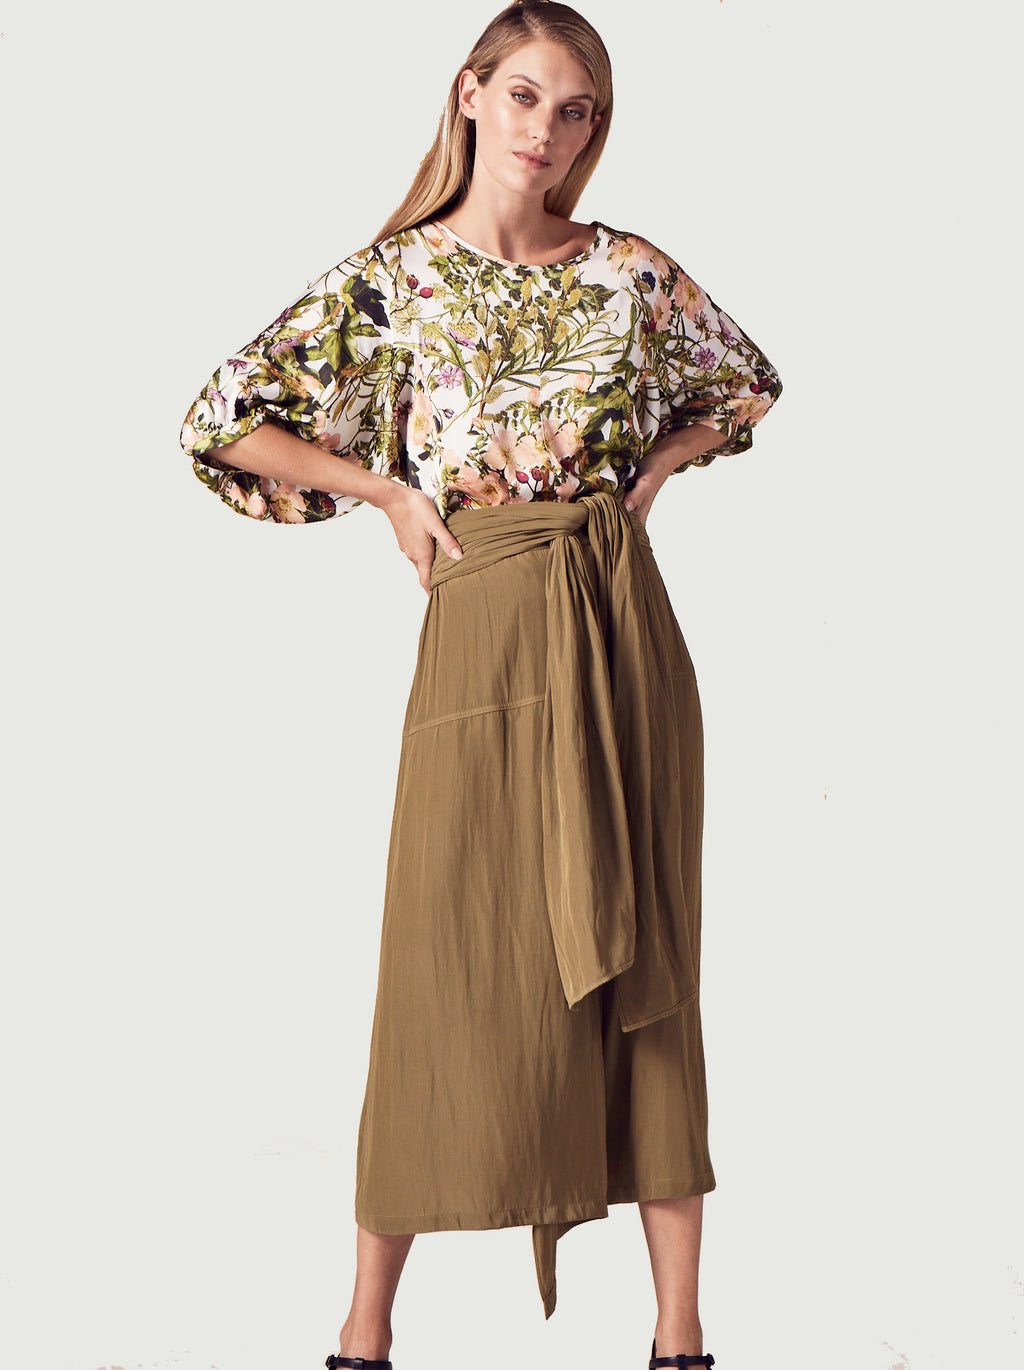 MELA PURDIE - Bouquet Top online at PAYA boutique